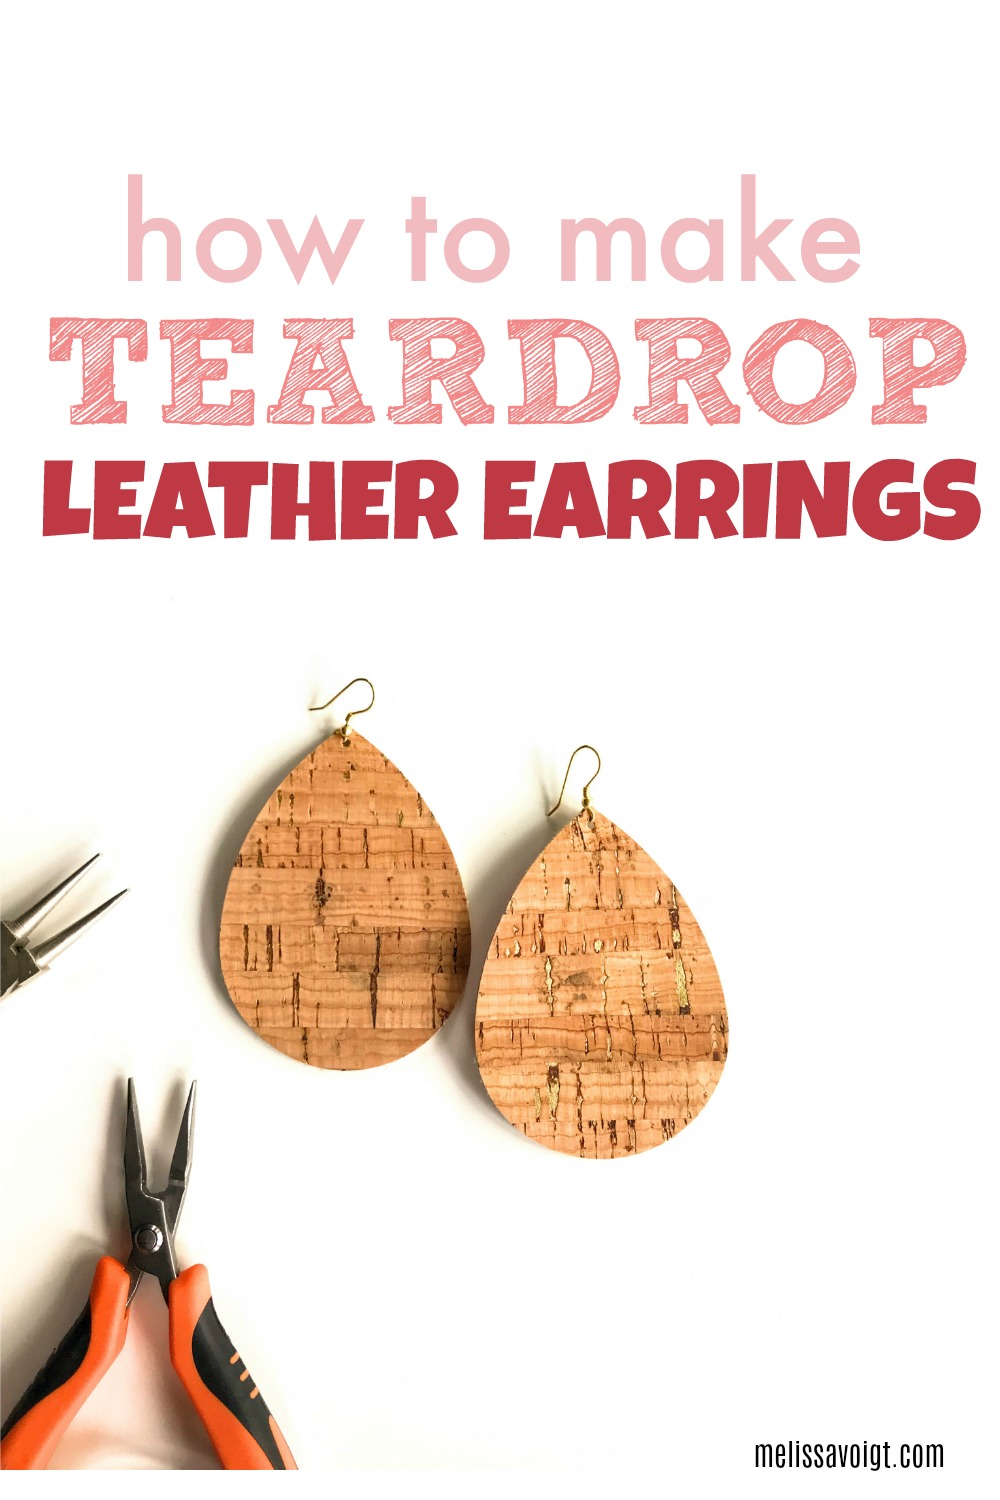 teardrop leather earrings svg.jpg